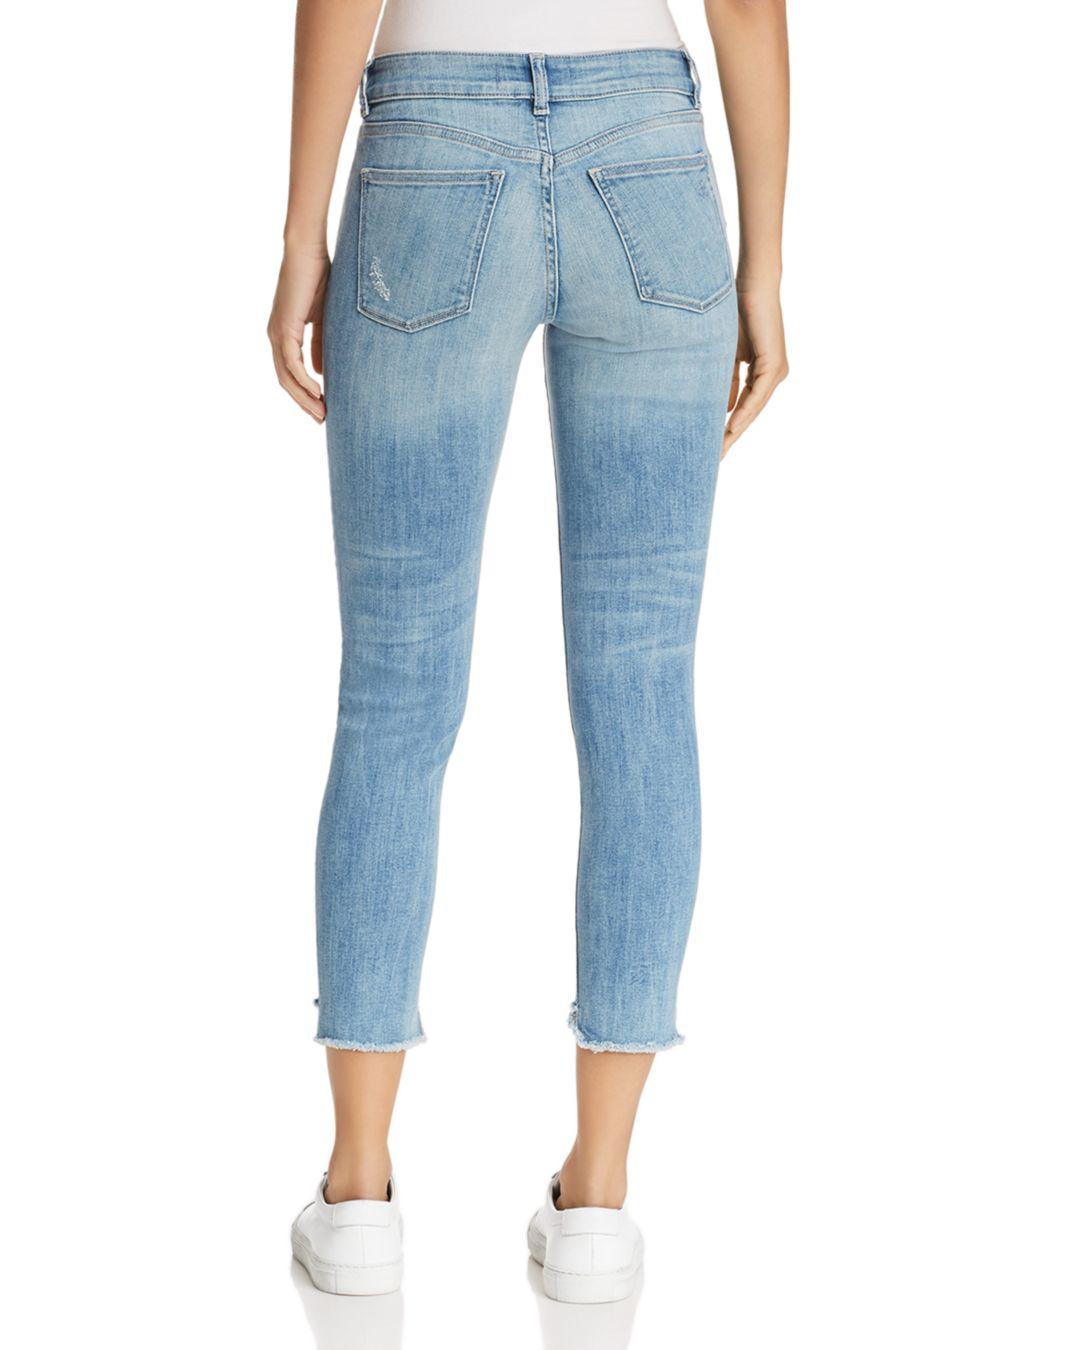 9d8f70ae7c98b Lyst - DL1961 Florence Instasculpt Crop Skinny Jeans In Hendrix in Blue